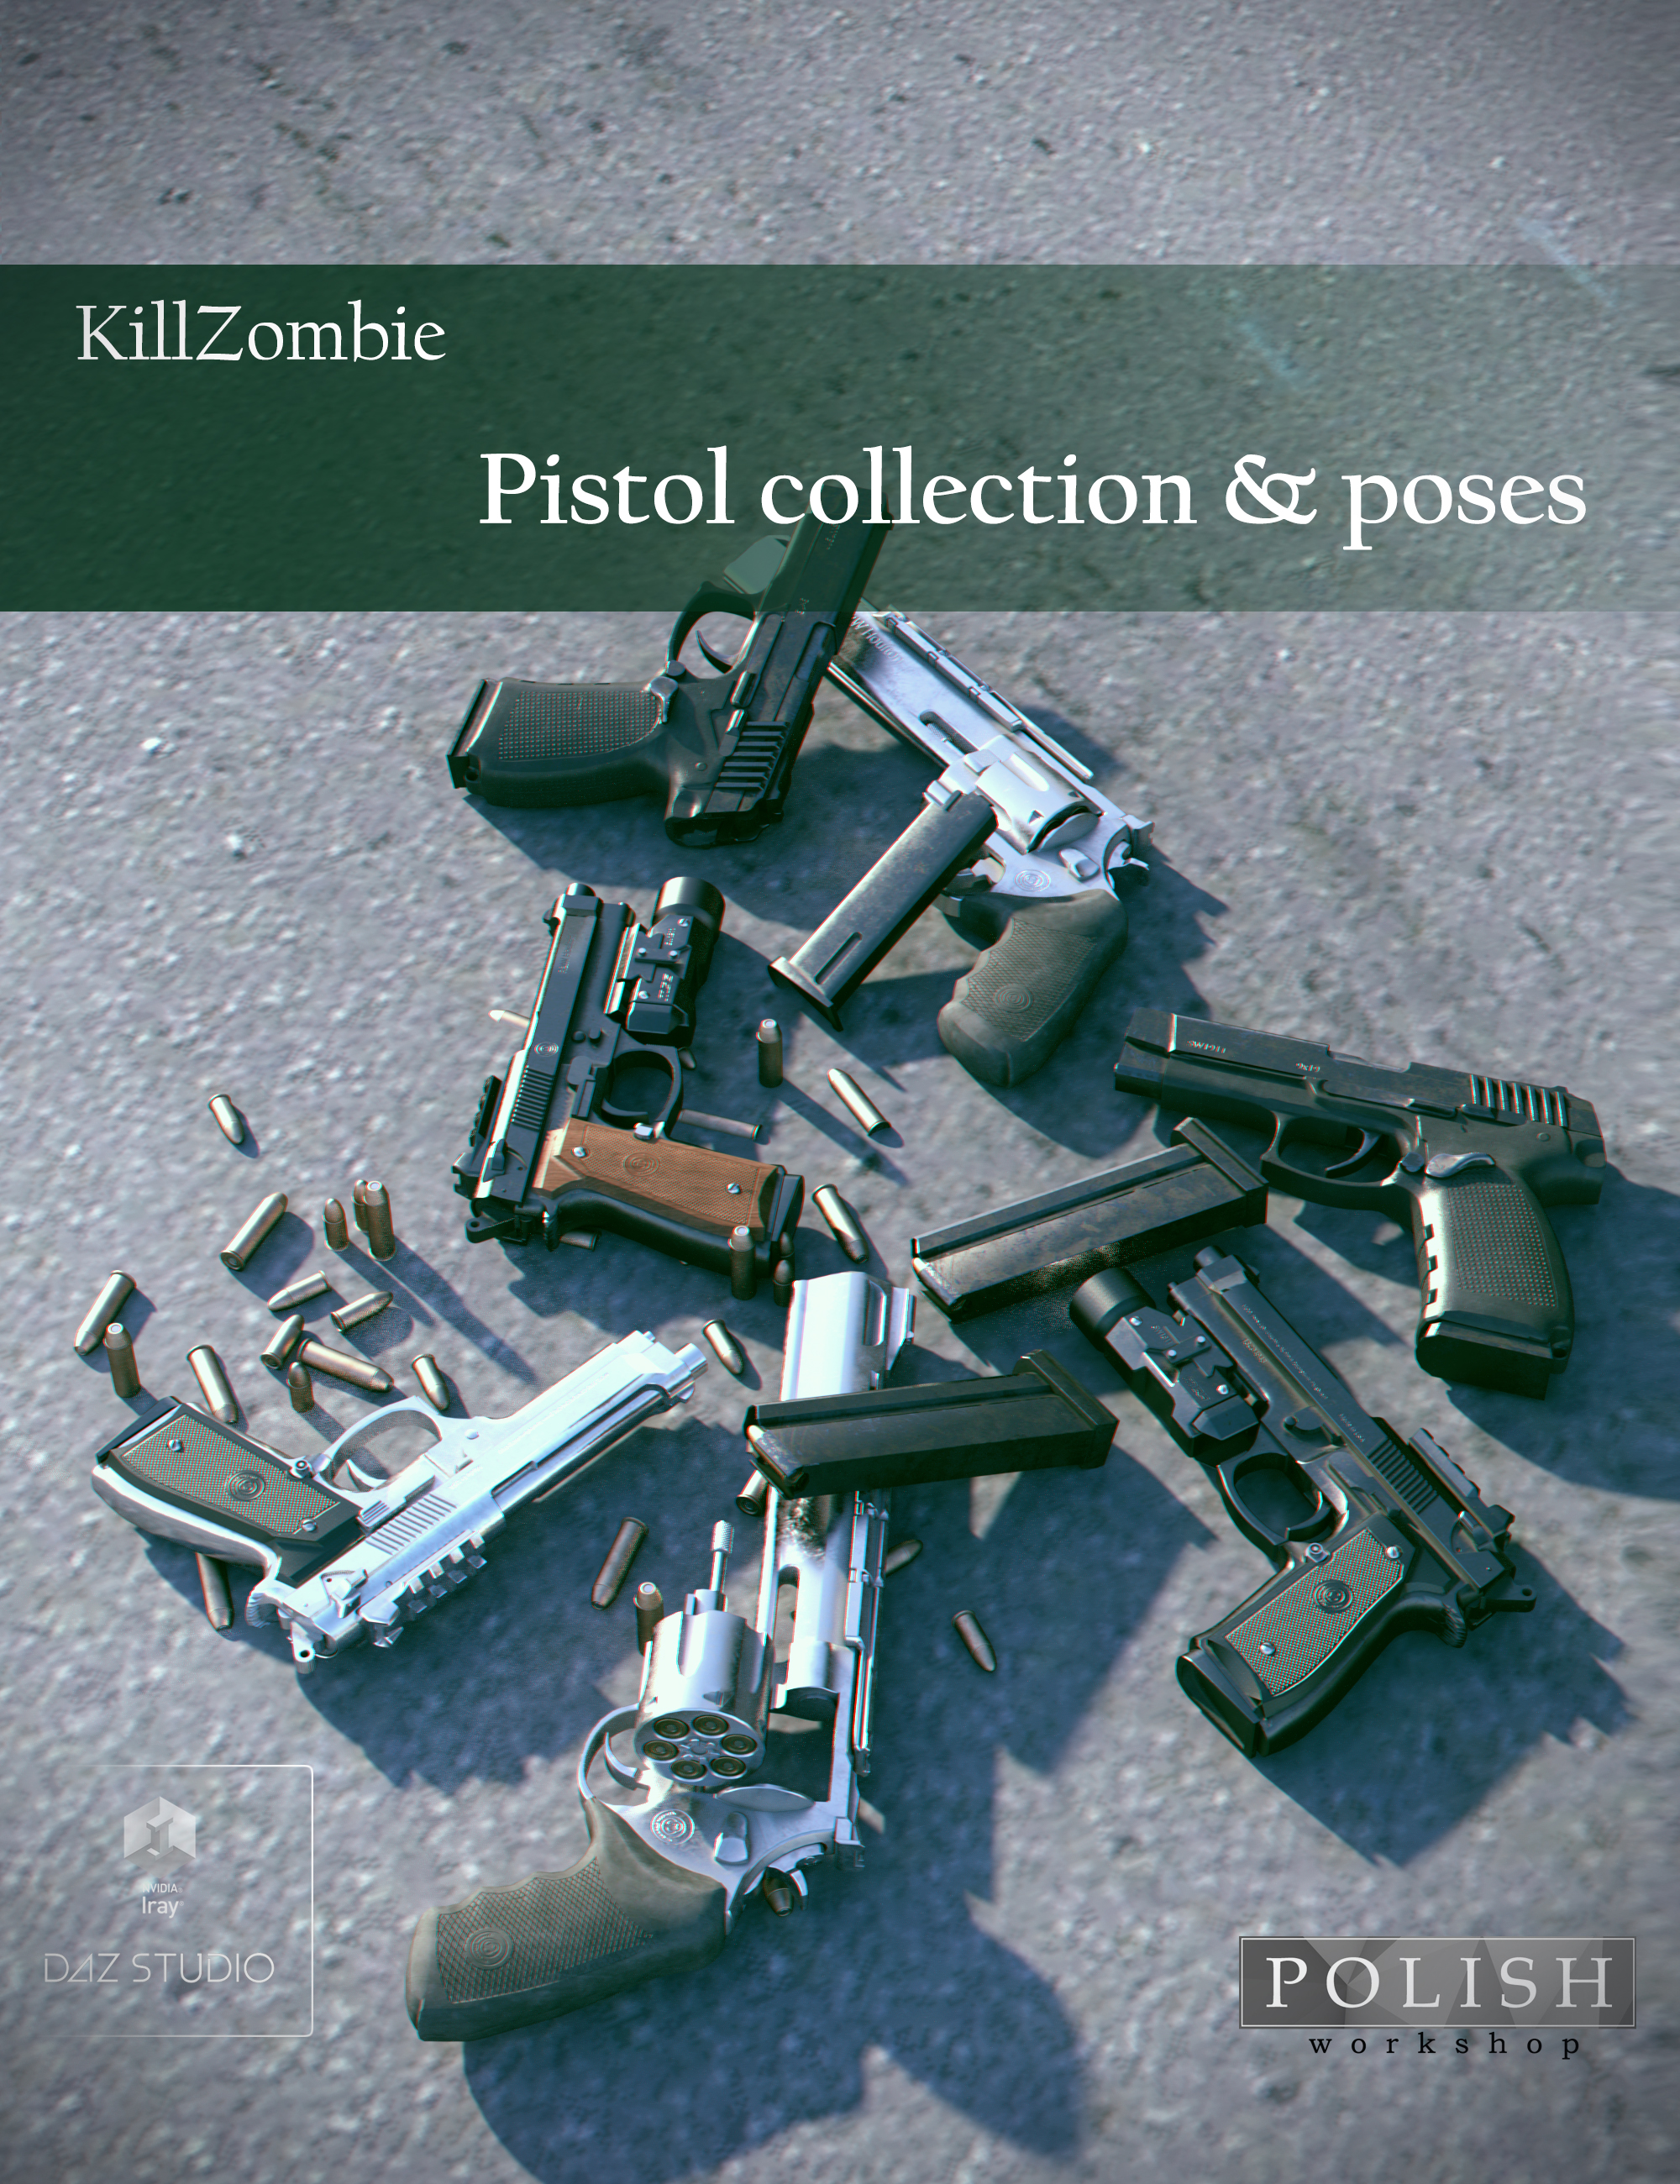 KillZombie Pistols Collection by: Polish, 3D Models by Daz 3D